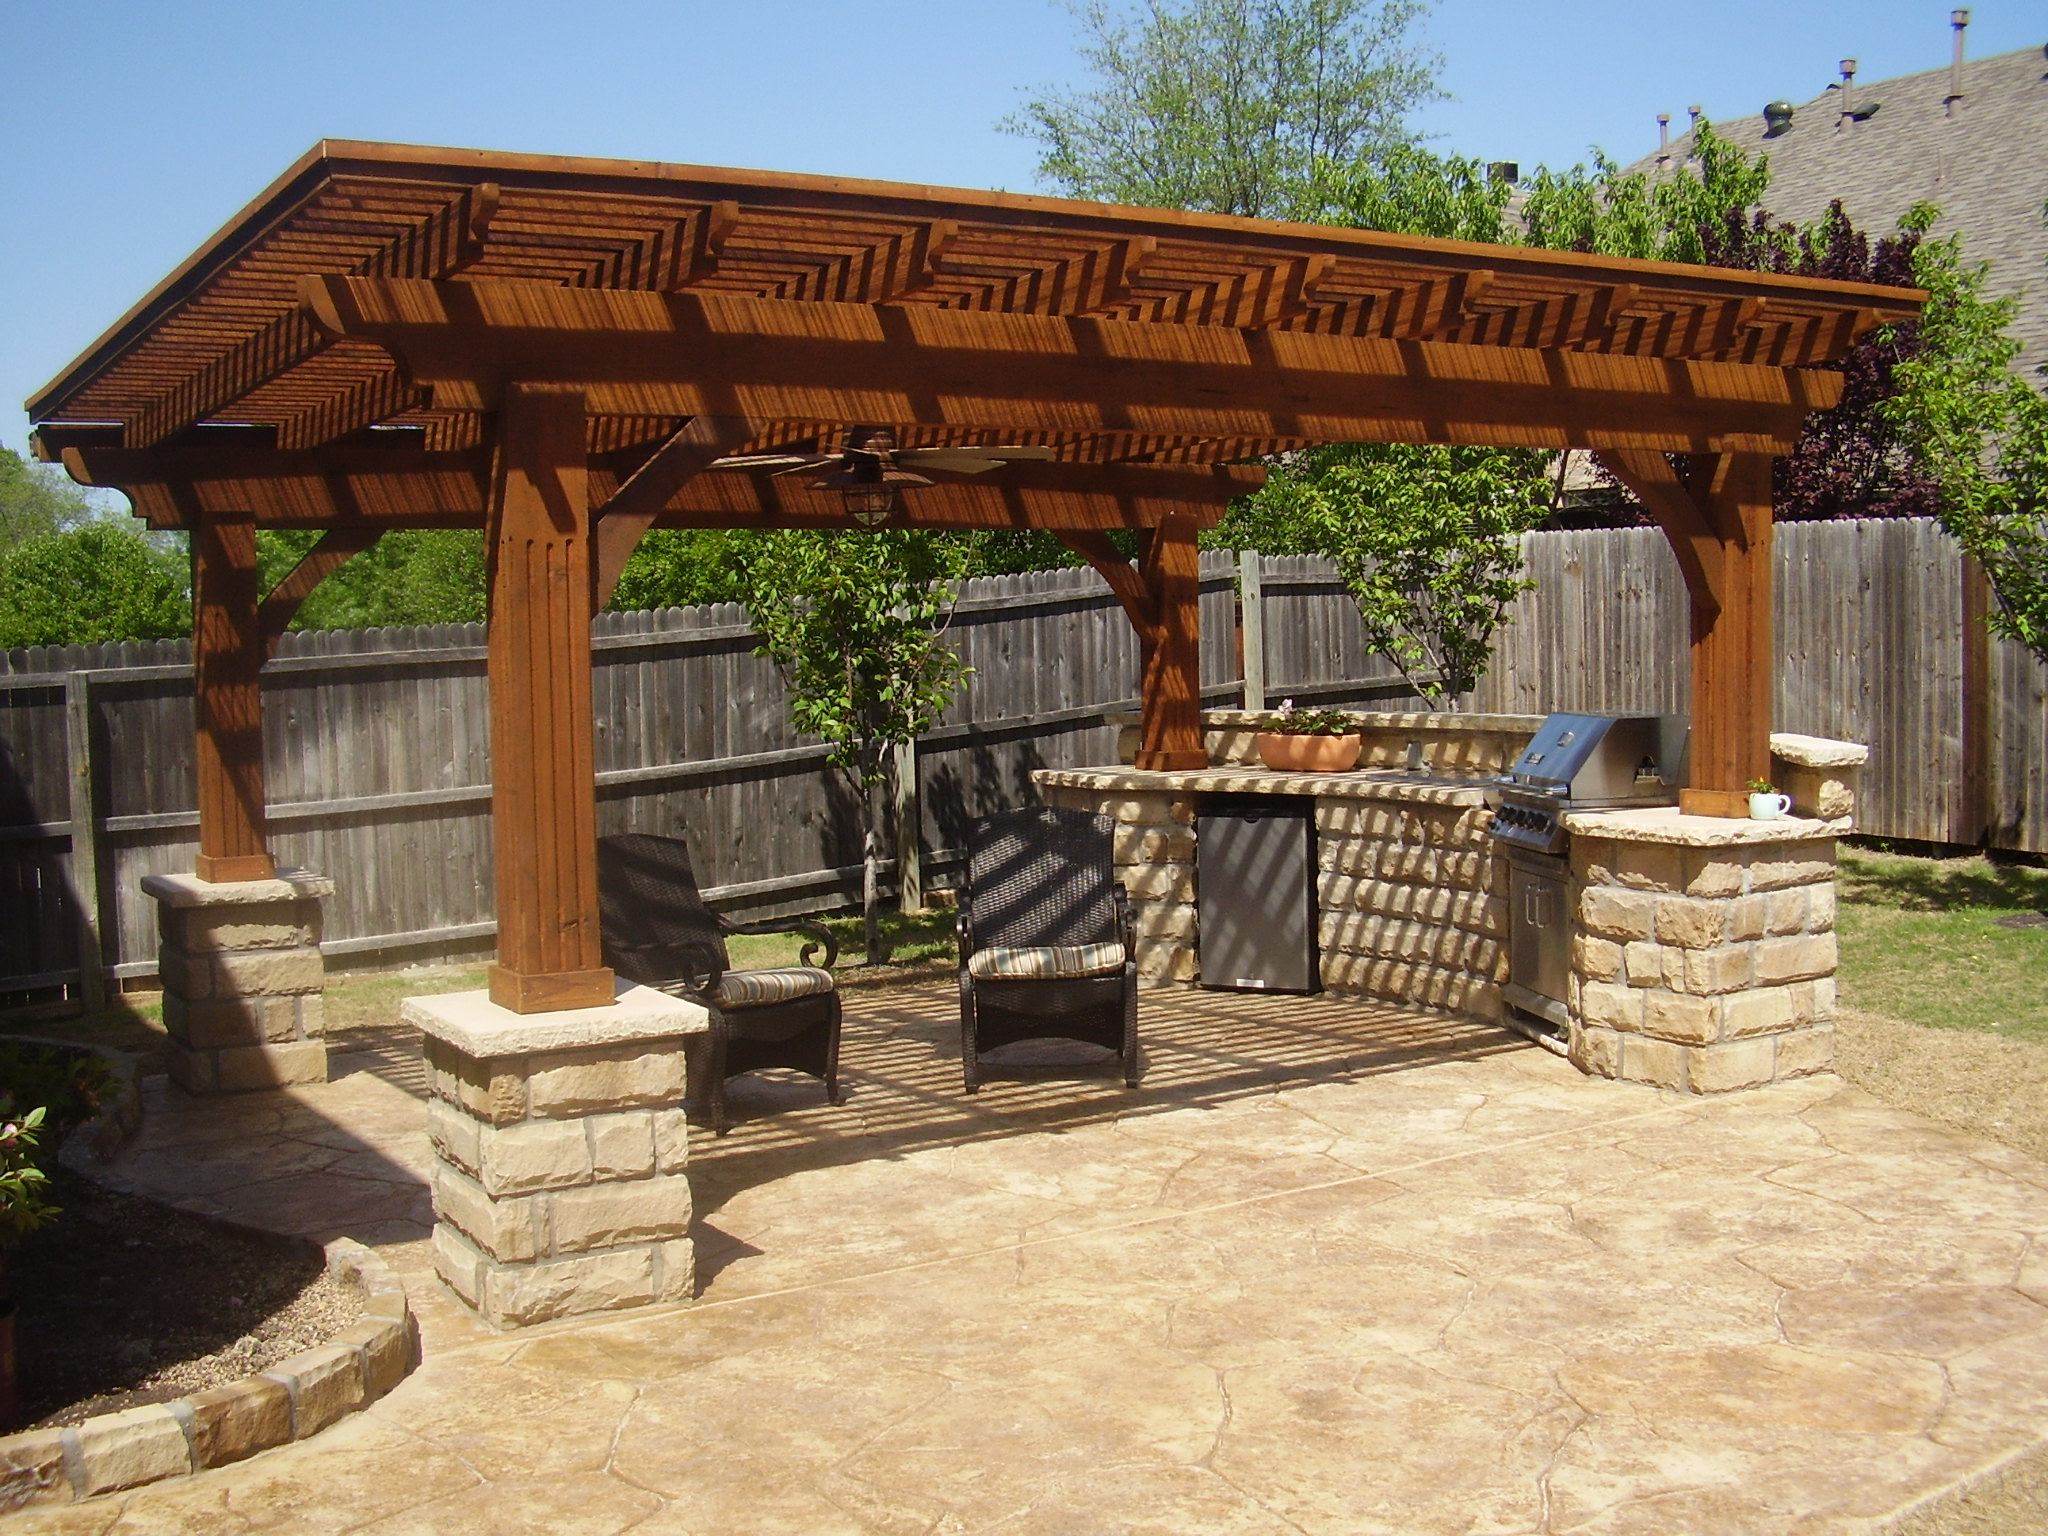 Stonework - Patios - Arbors - Pergolas - Outdoor Living - Fire Pits